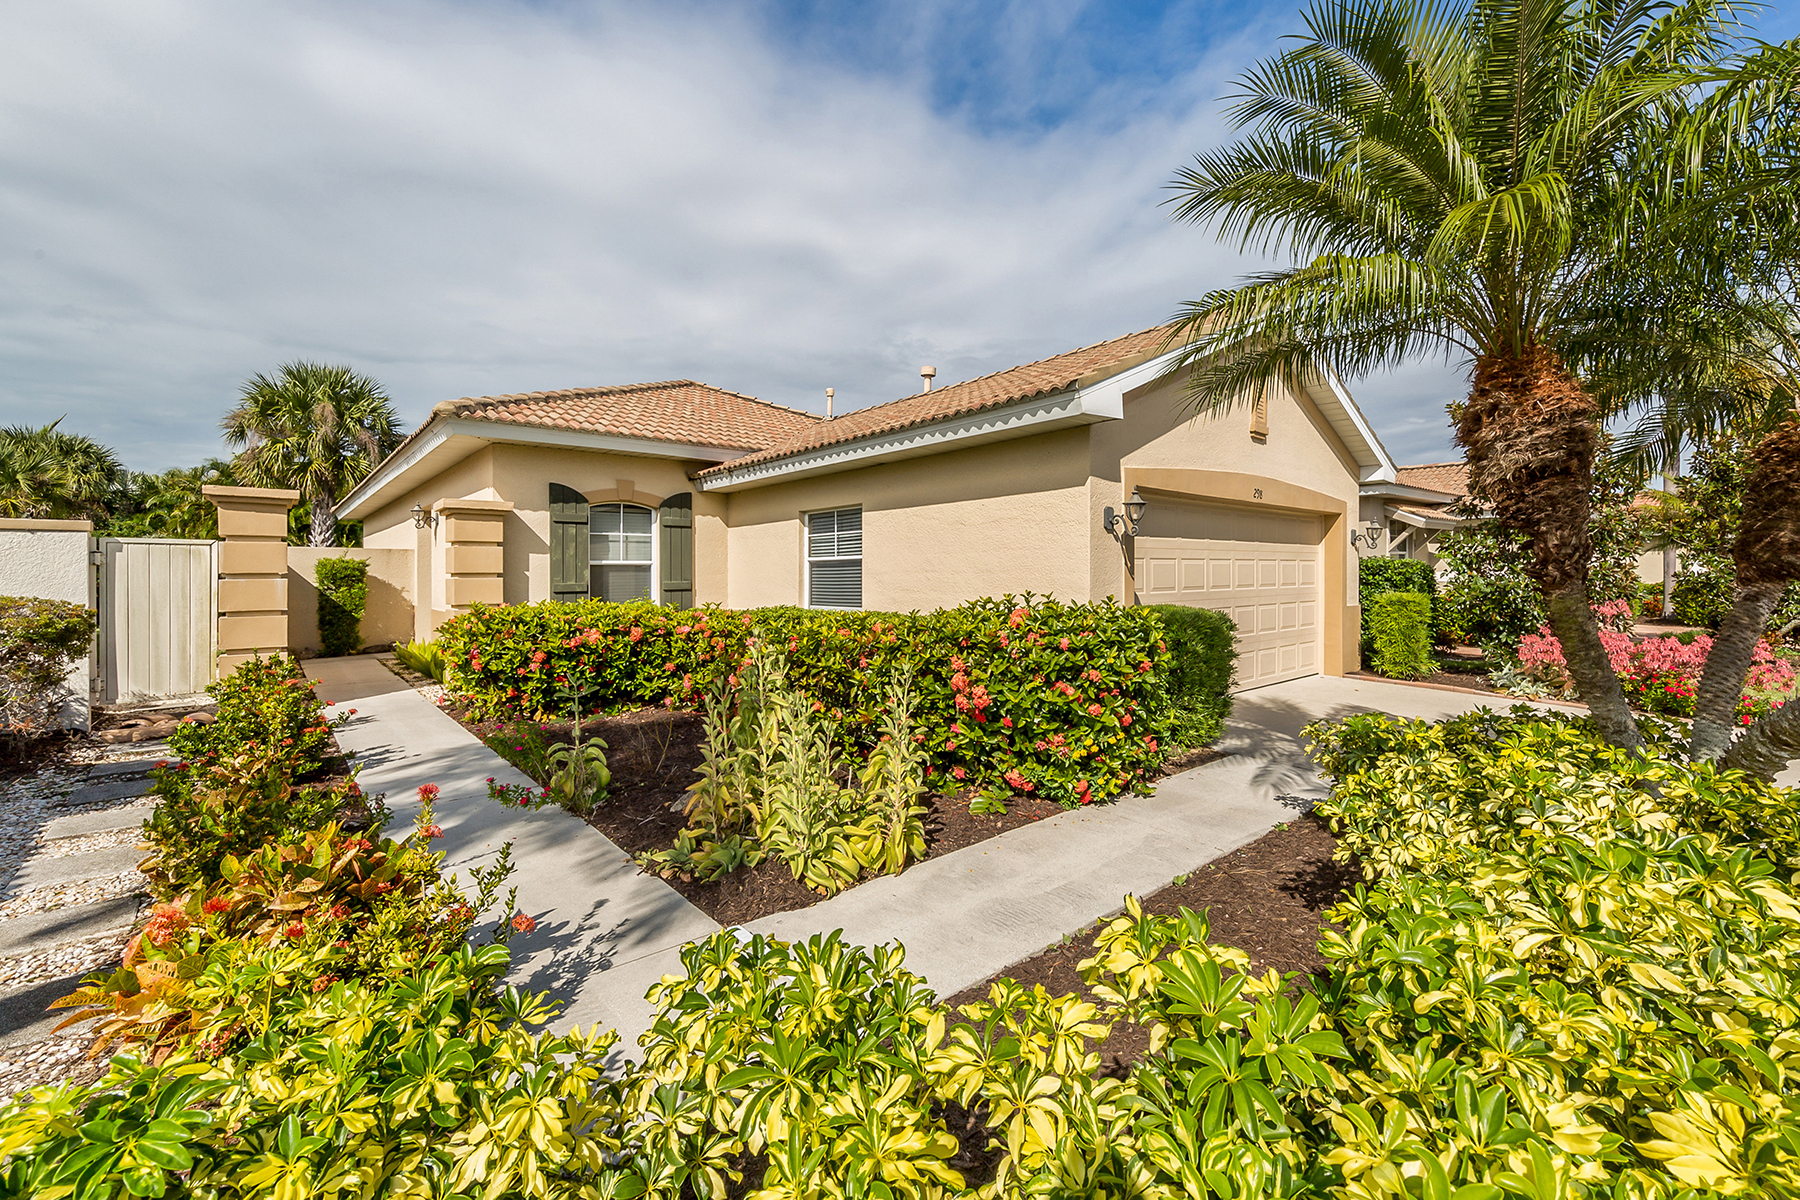 Single Family Homes for Sale at VENETIAN GOLF & RIVER CLUB 298 Padova Way North Venice, Florida 34275 United States